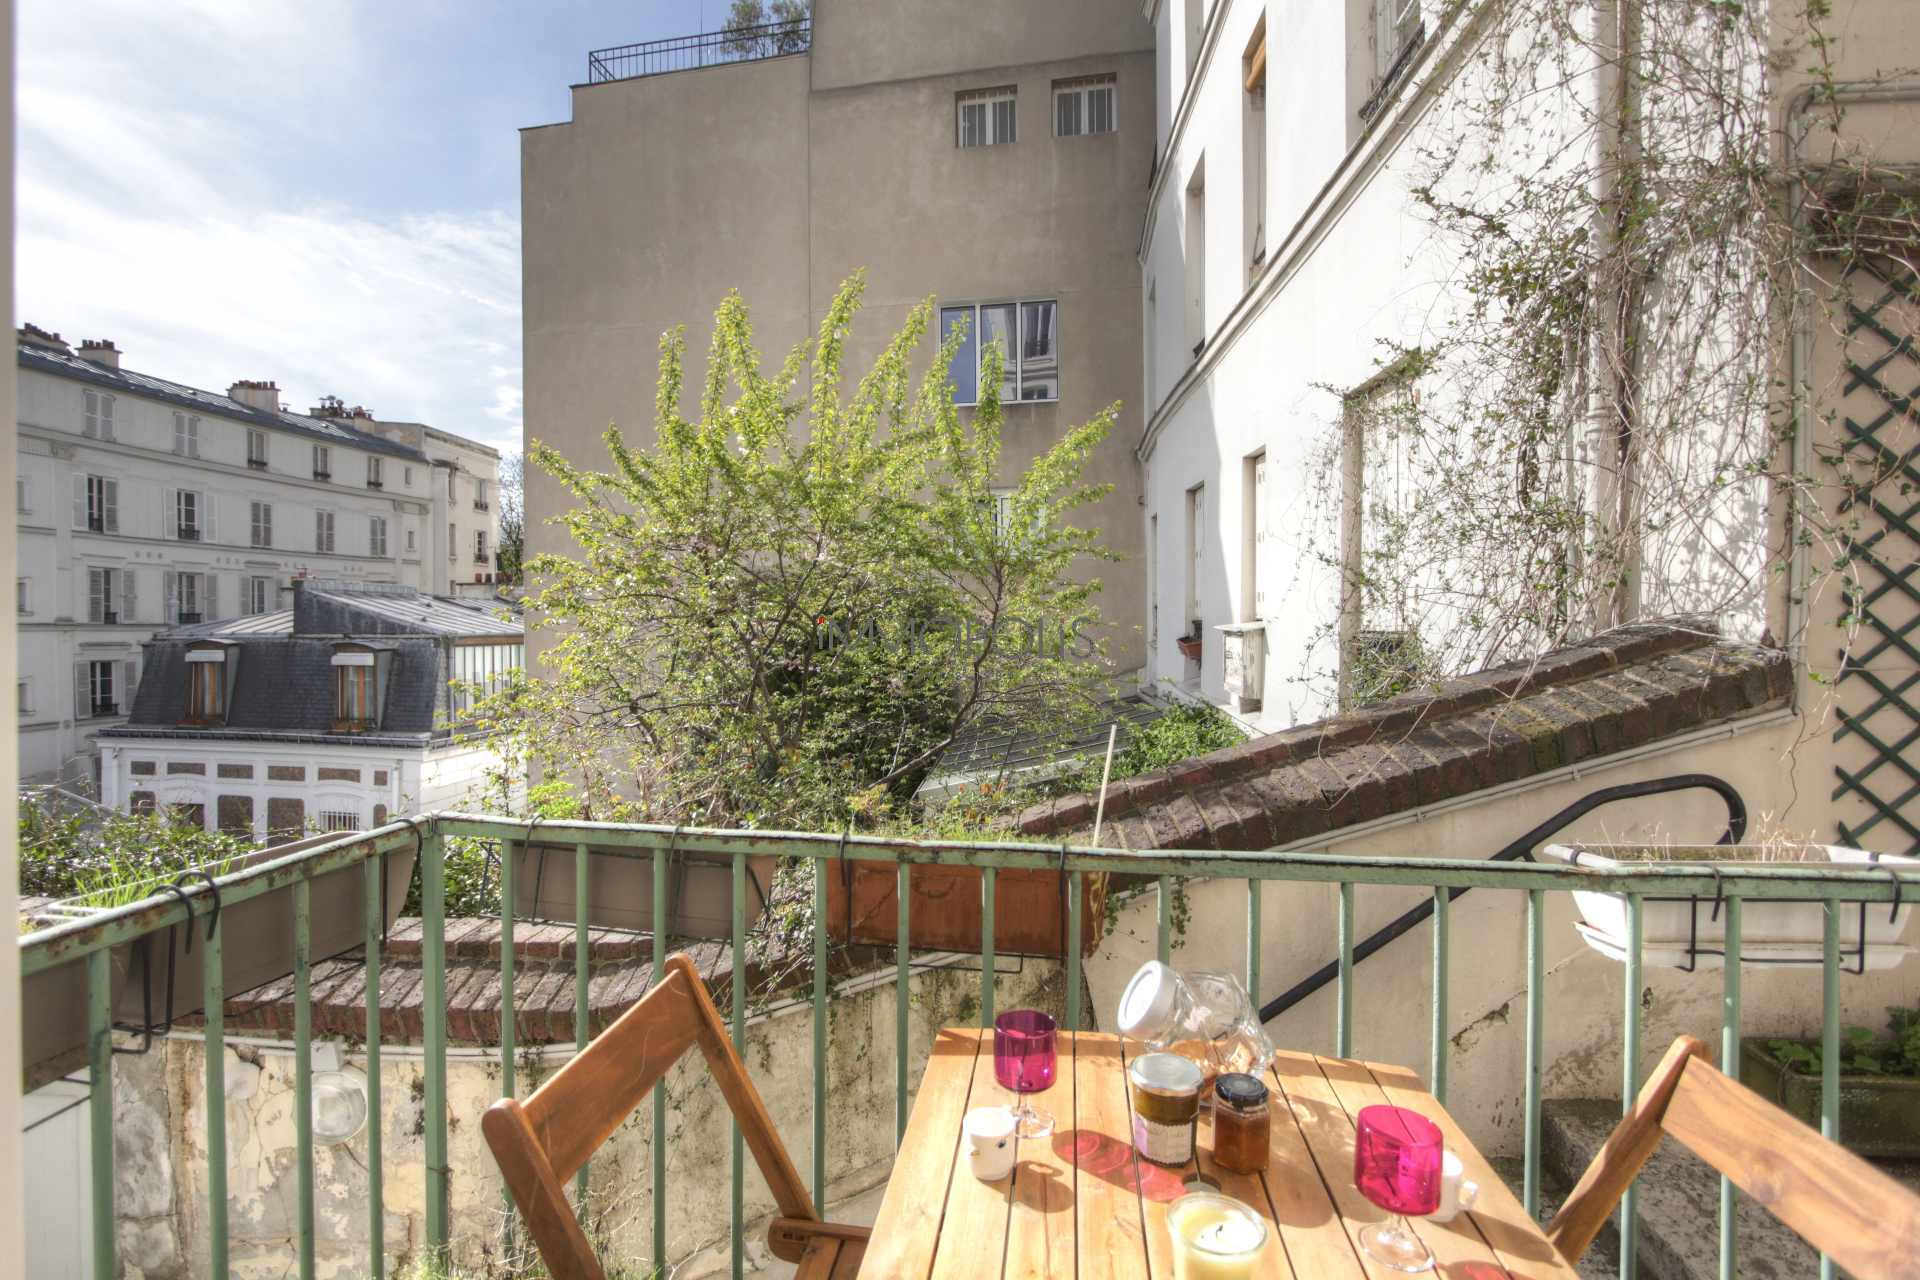 Exceptional in Montmartre (rue Gabrielle): renovated open space, sumptuous fittings, with balcony and open view! 1